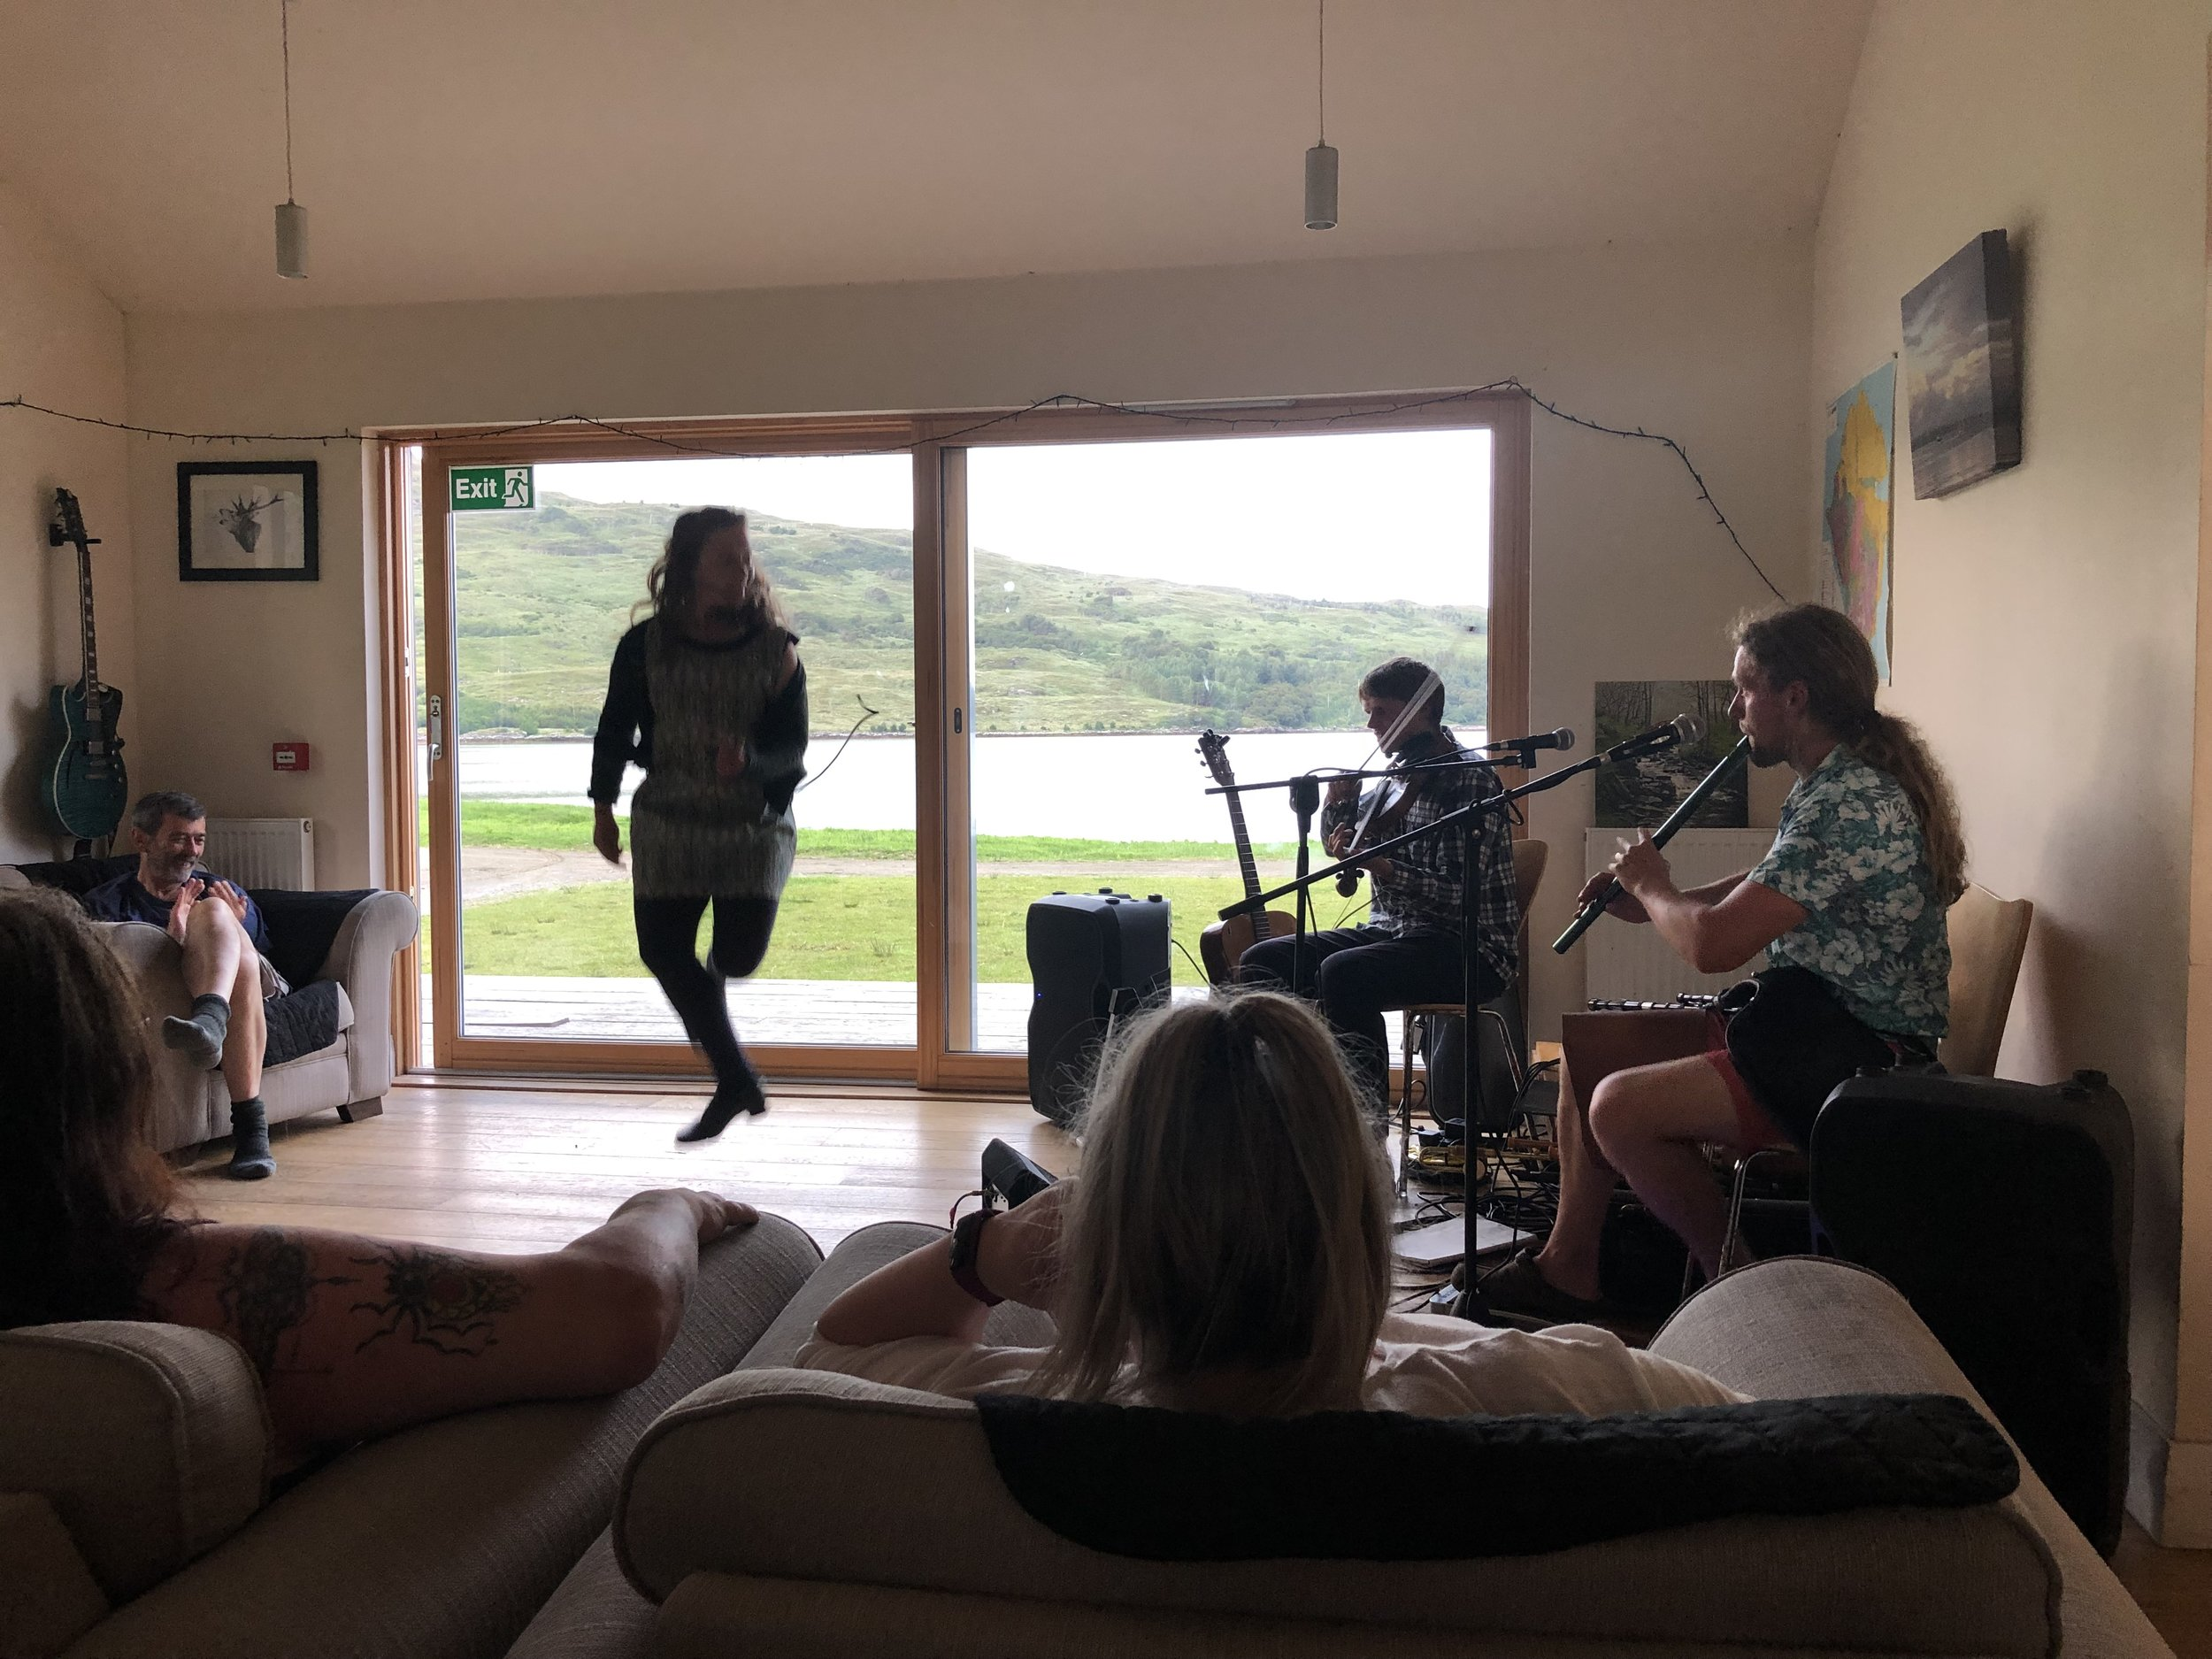 Rachel Muir wowing an intimate audience in the Isle of Rum Bunkhouse, July 2019